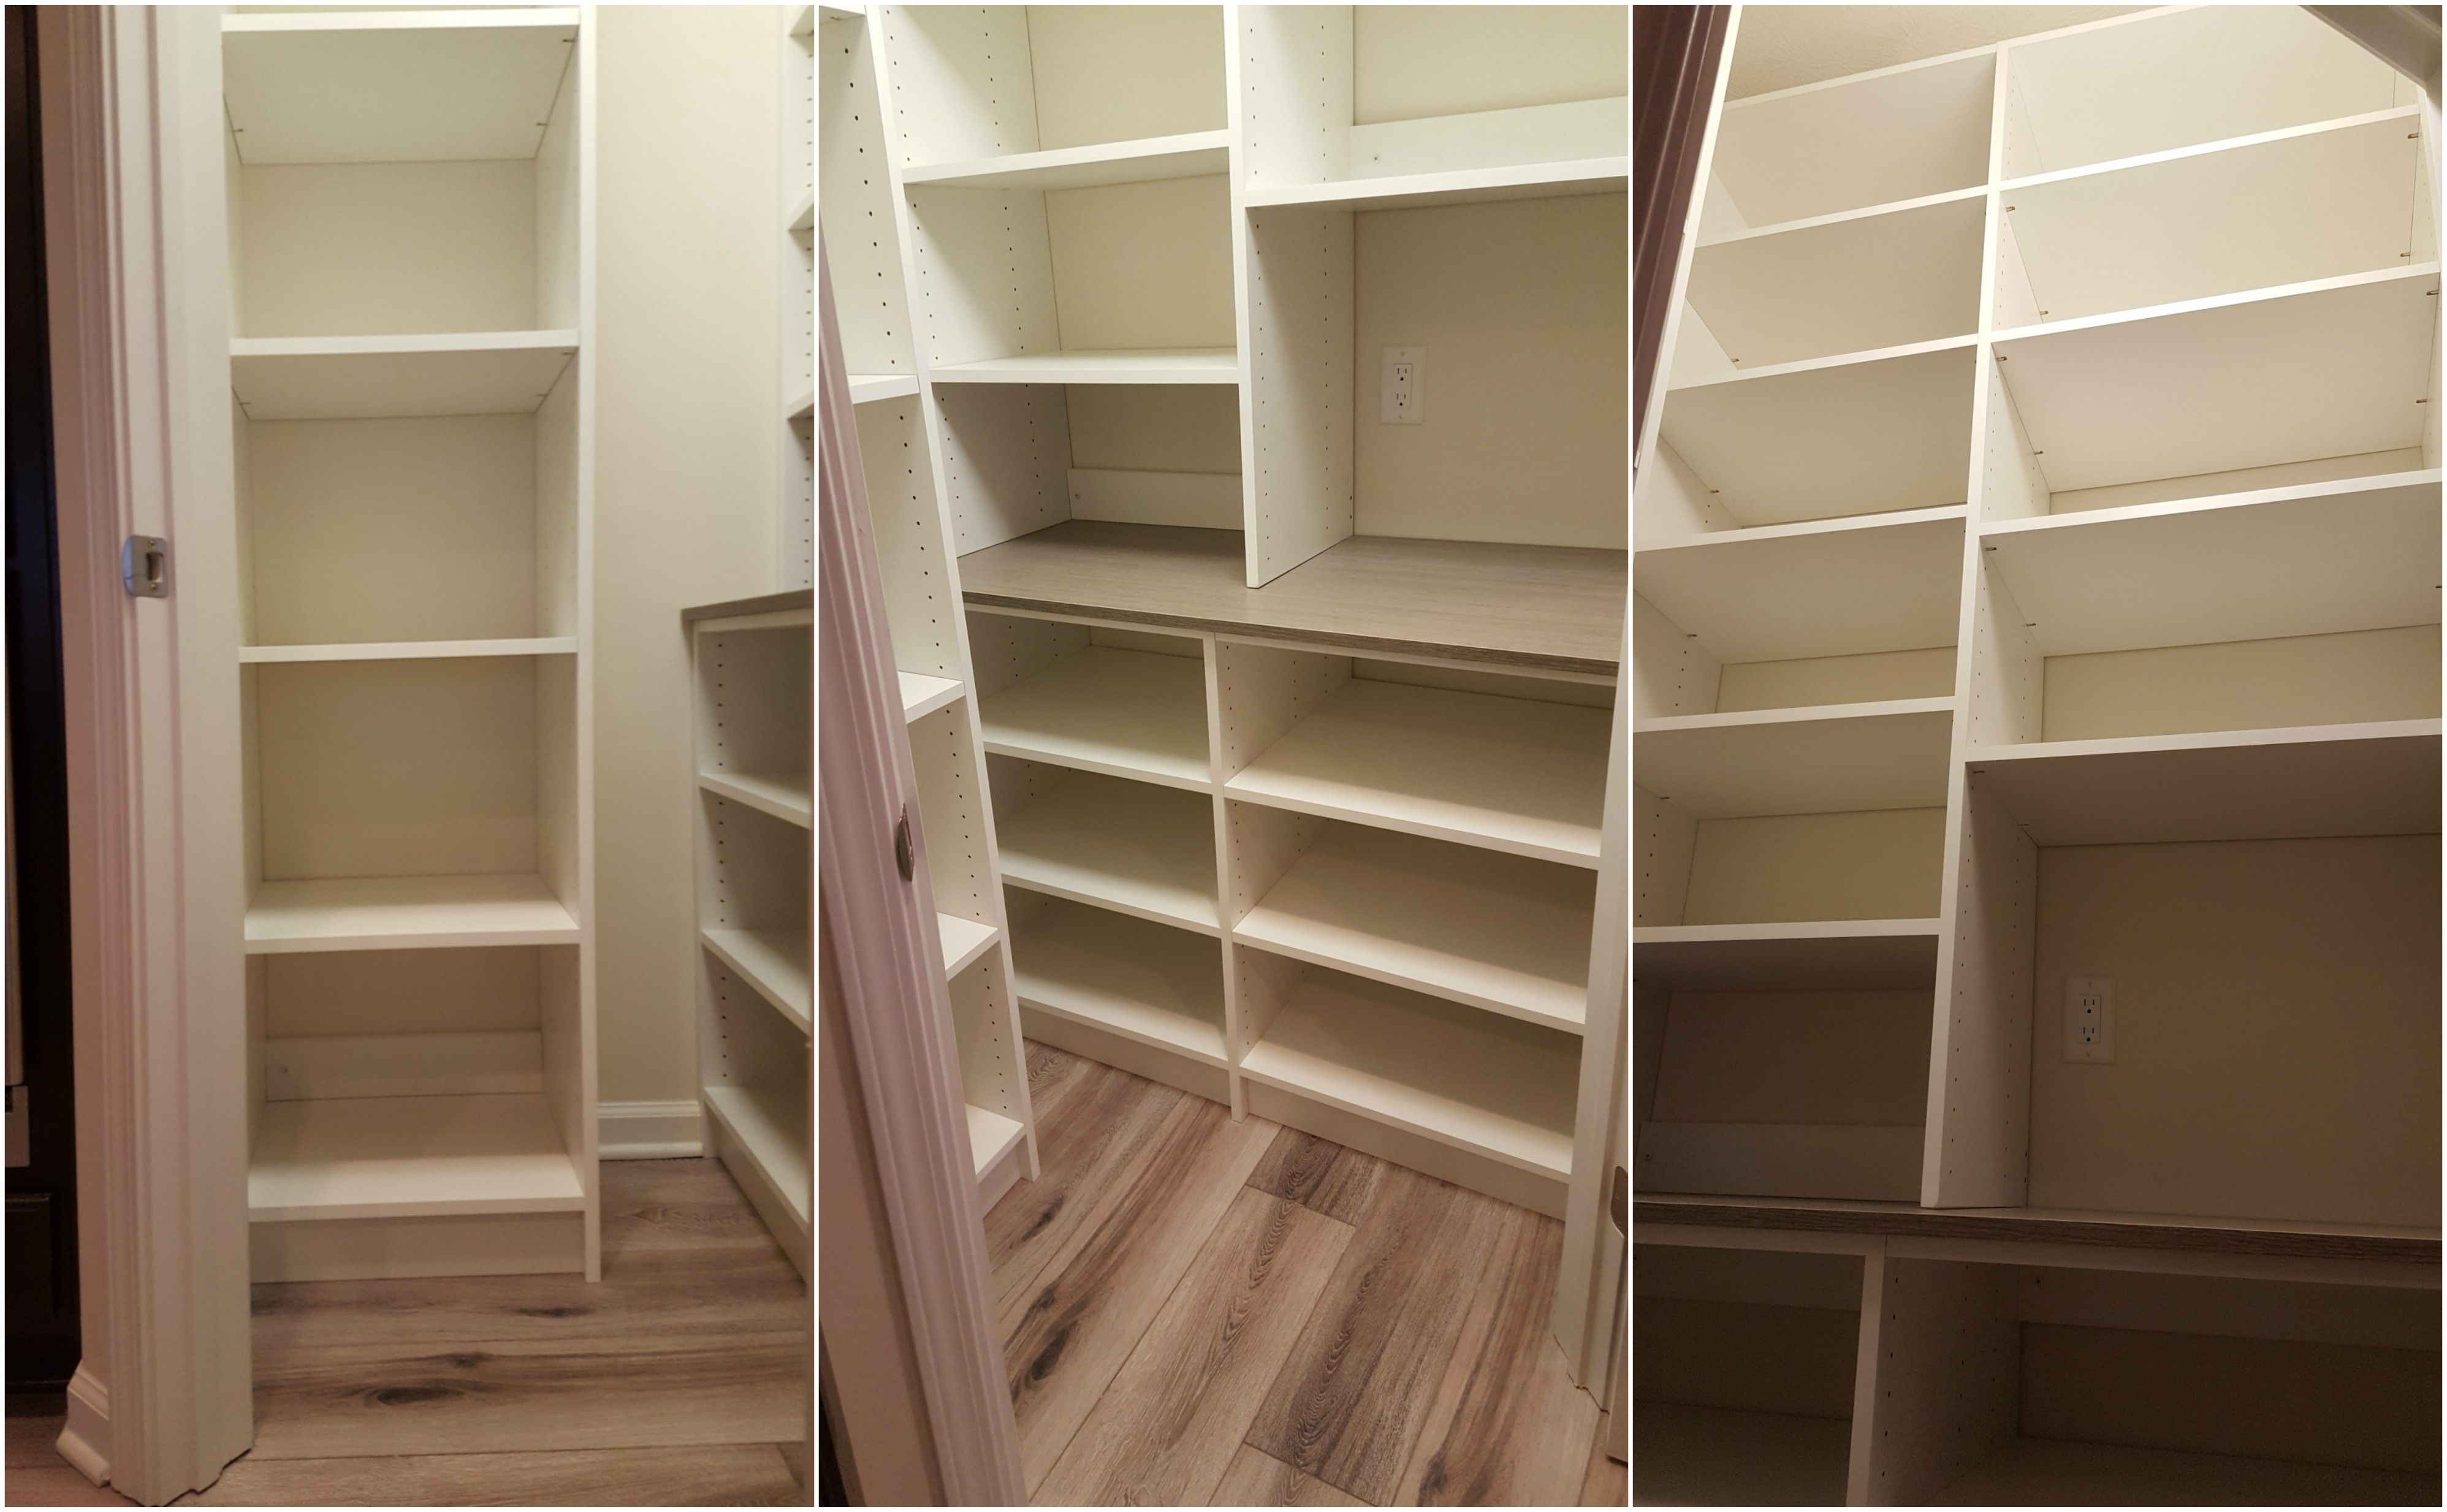 White Melamine Pantry With Adjustable Shelving And Accent Top Adjustable Shelving Shelving Pantry